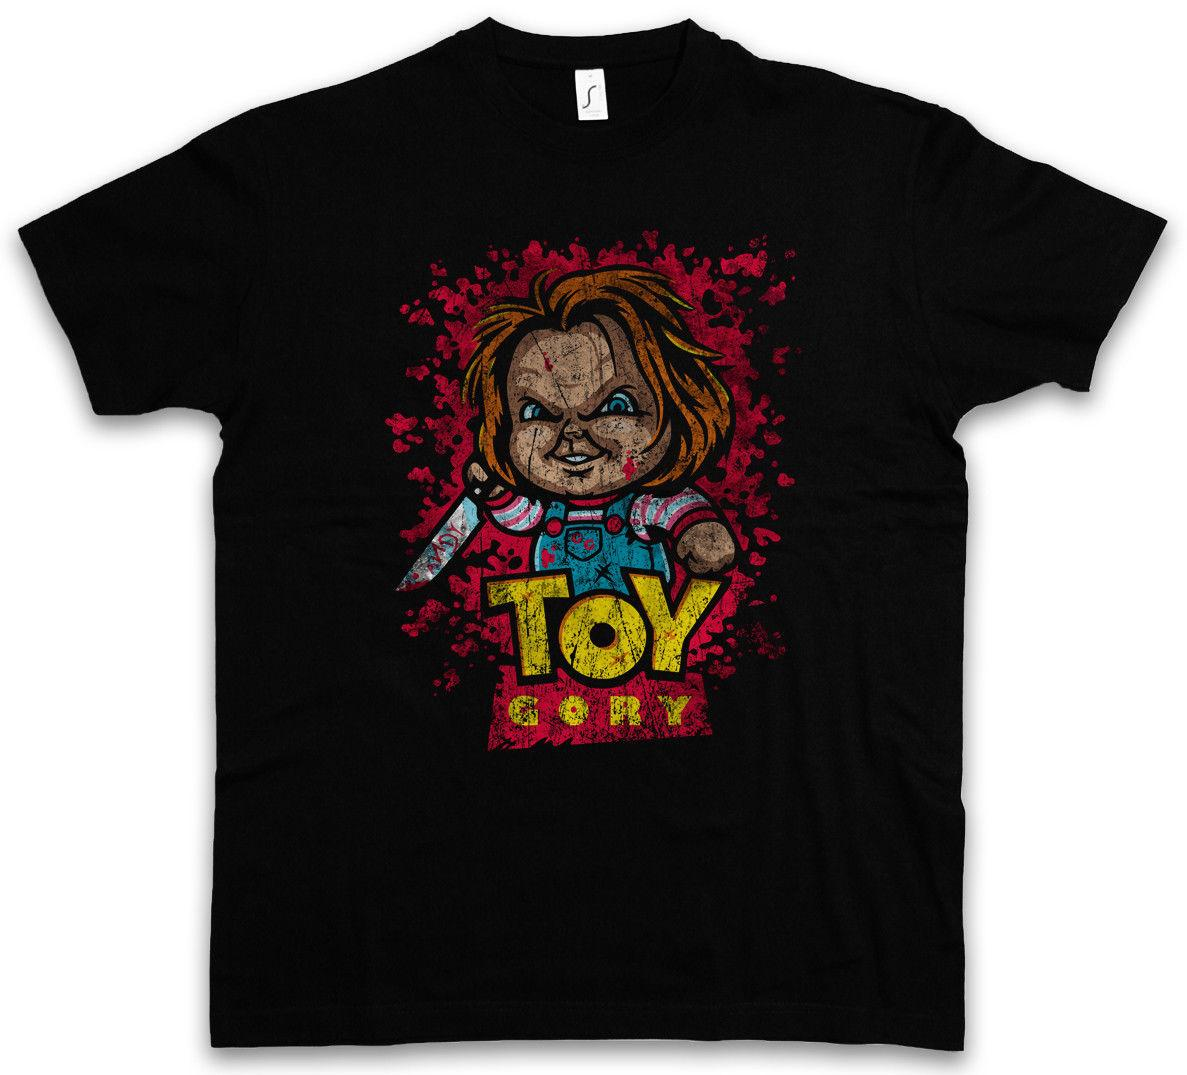 9179a214 TOY GORY T-SHIRT Bride Seed of Story Fun Shirt Chucky Gore bloody Child's  Play Cool Casual pride t shirt men